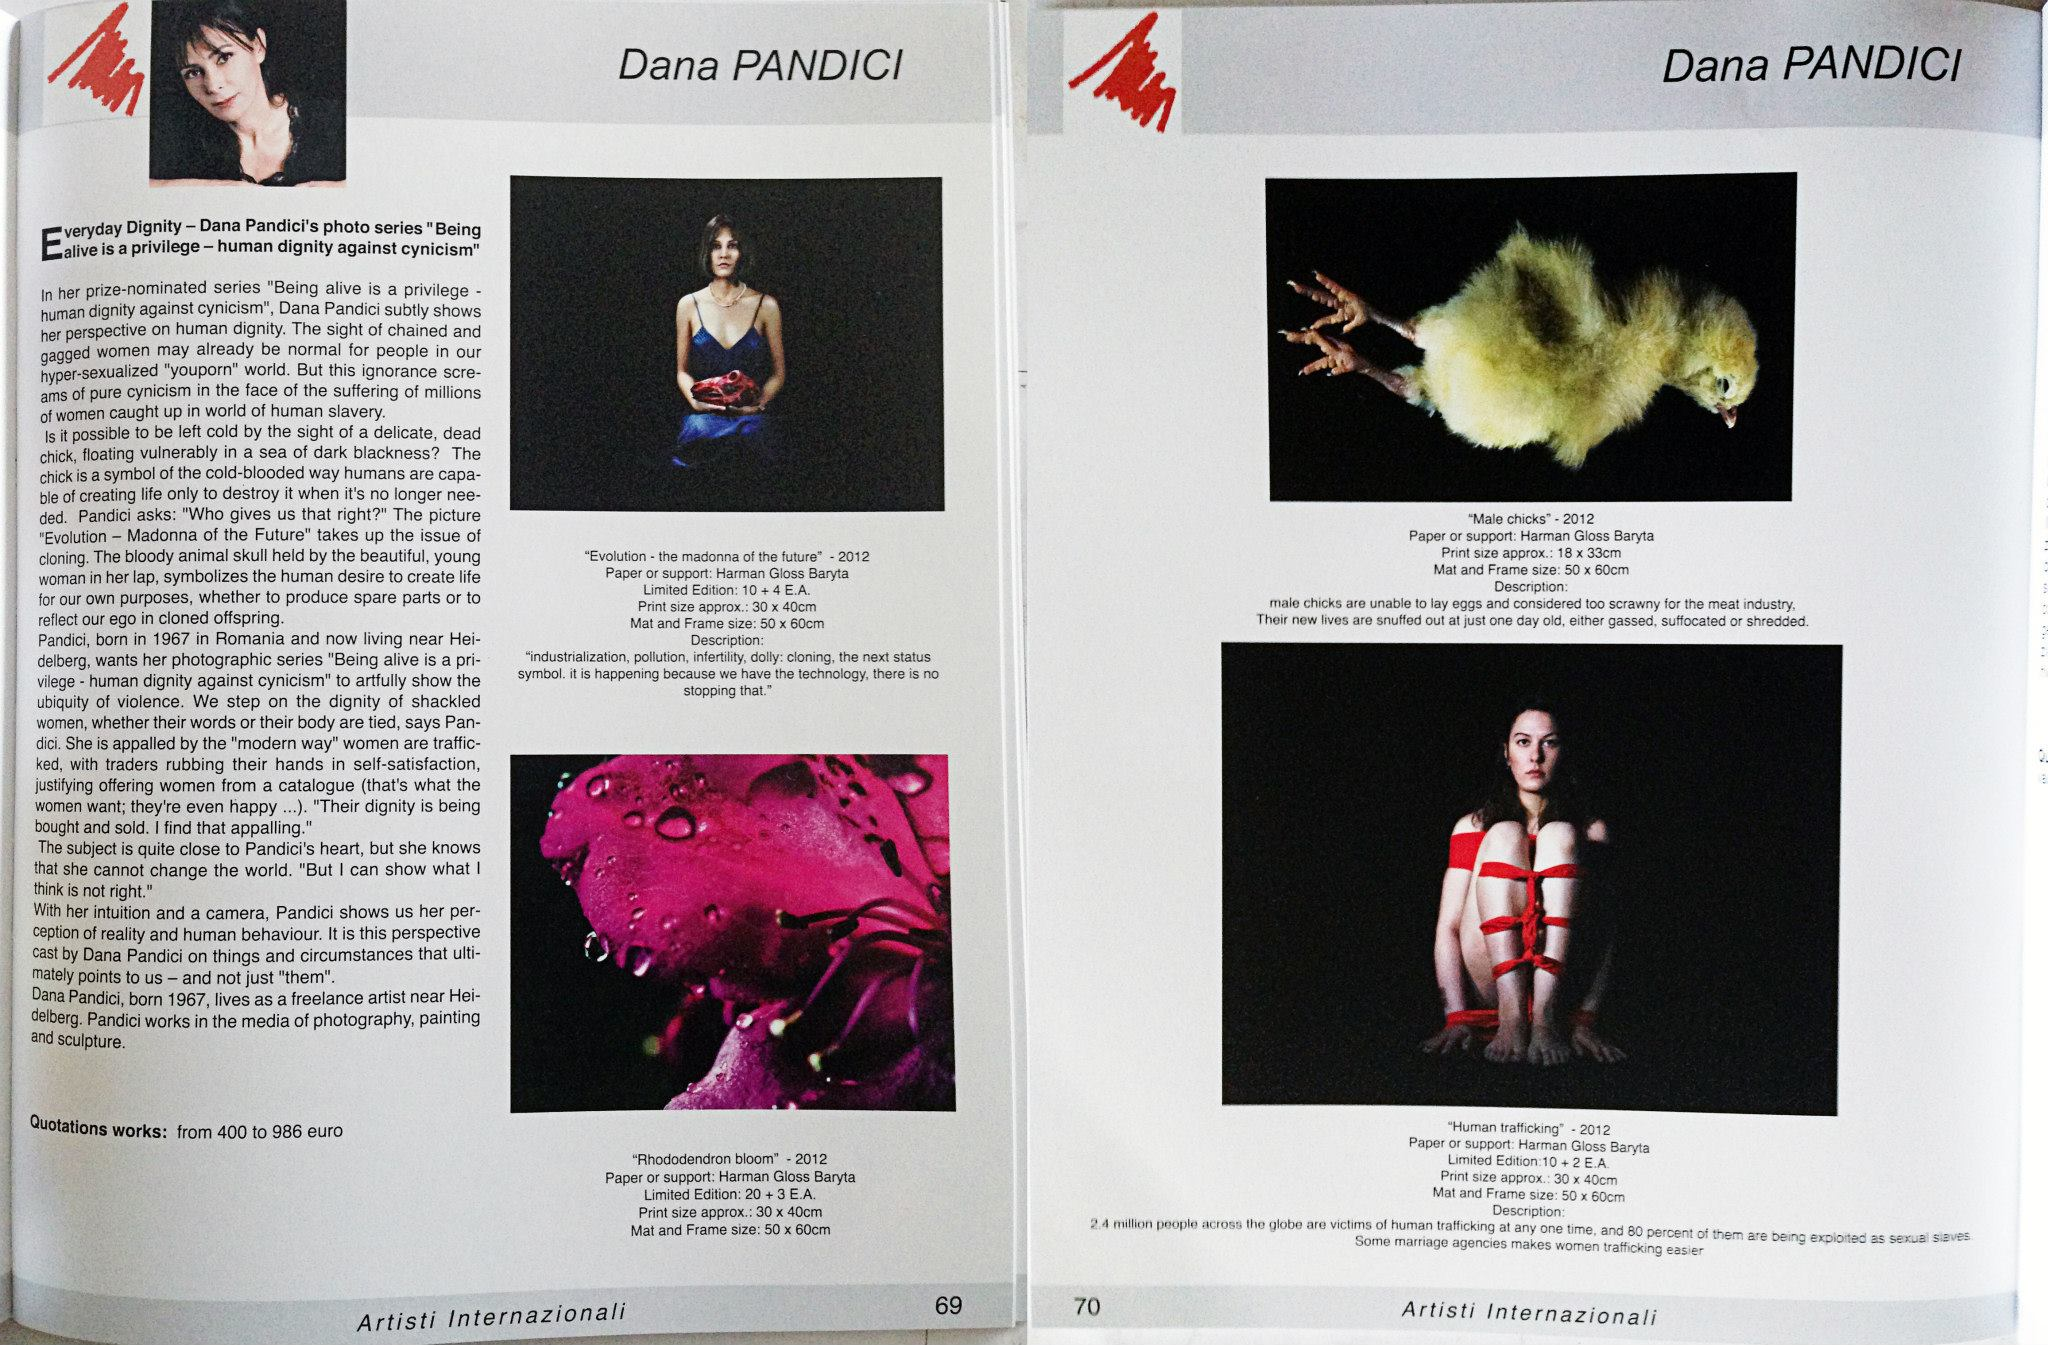 Publication: International Artist Catalog 4th edition 2014, Roma / Italy